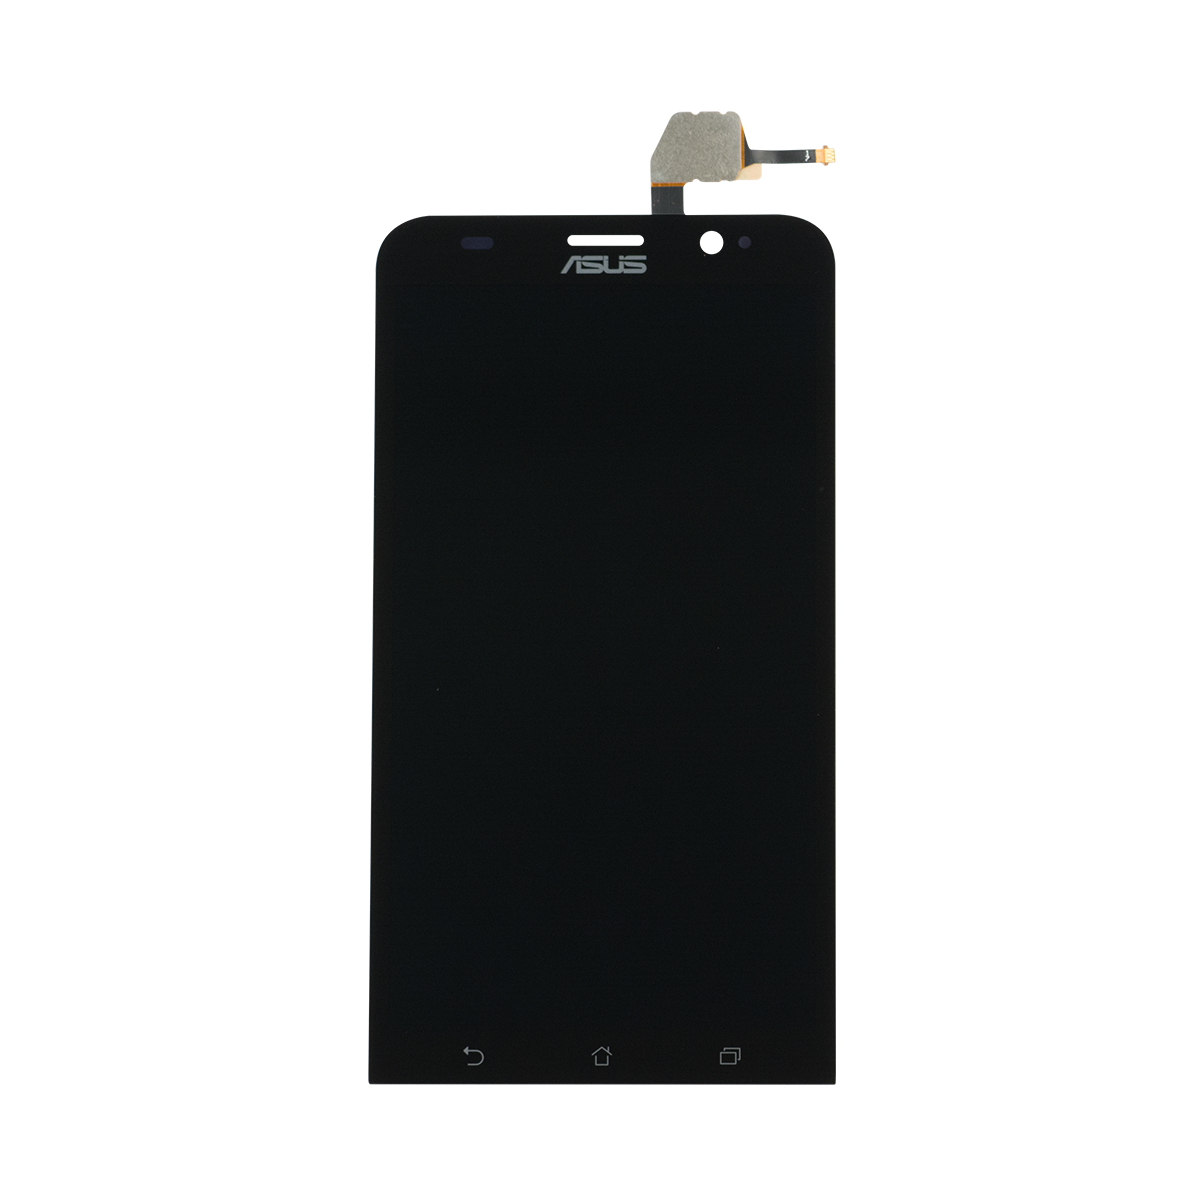 Thay man hinh Asus Zenfone 2 ZE550, X008D_20082017.png